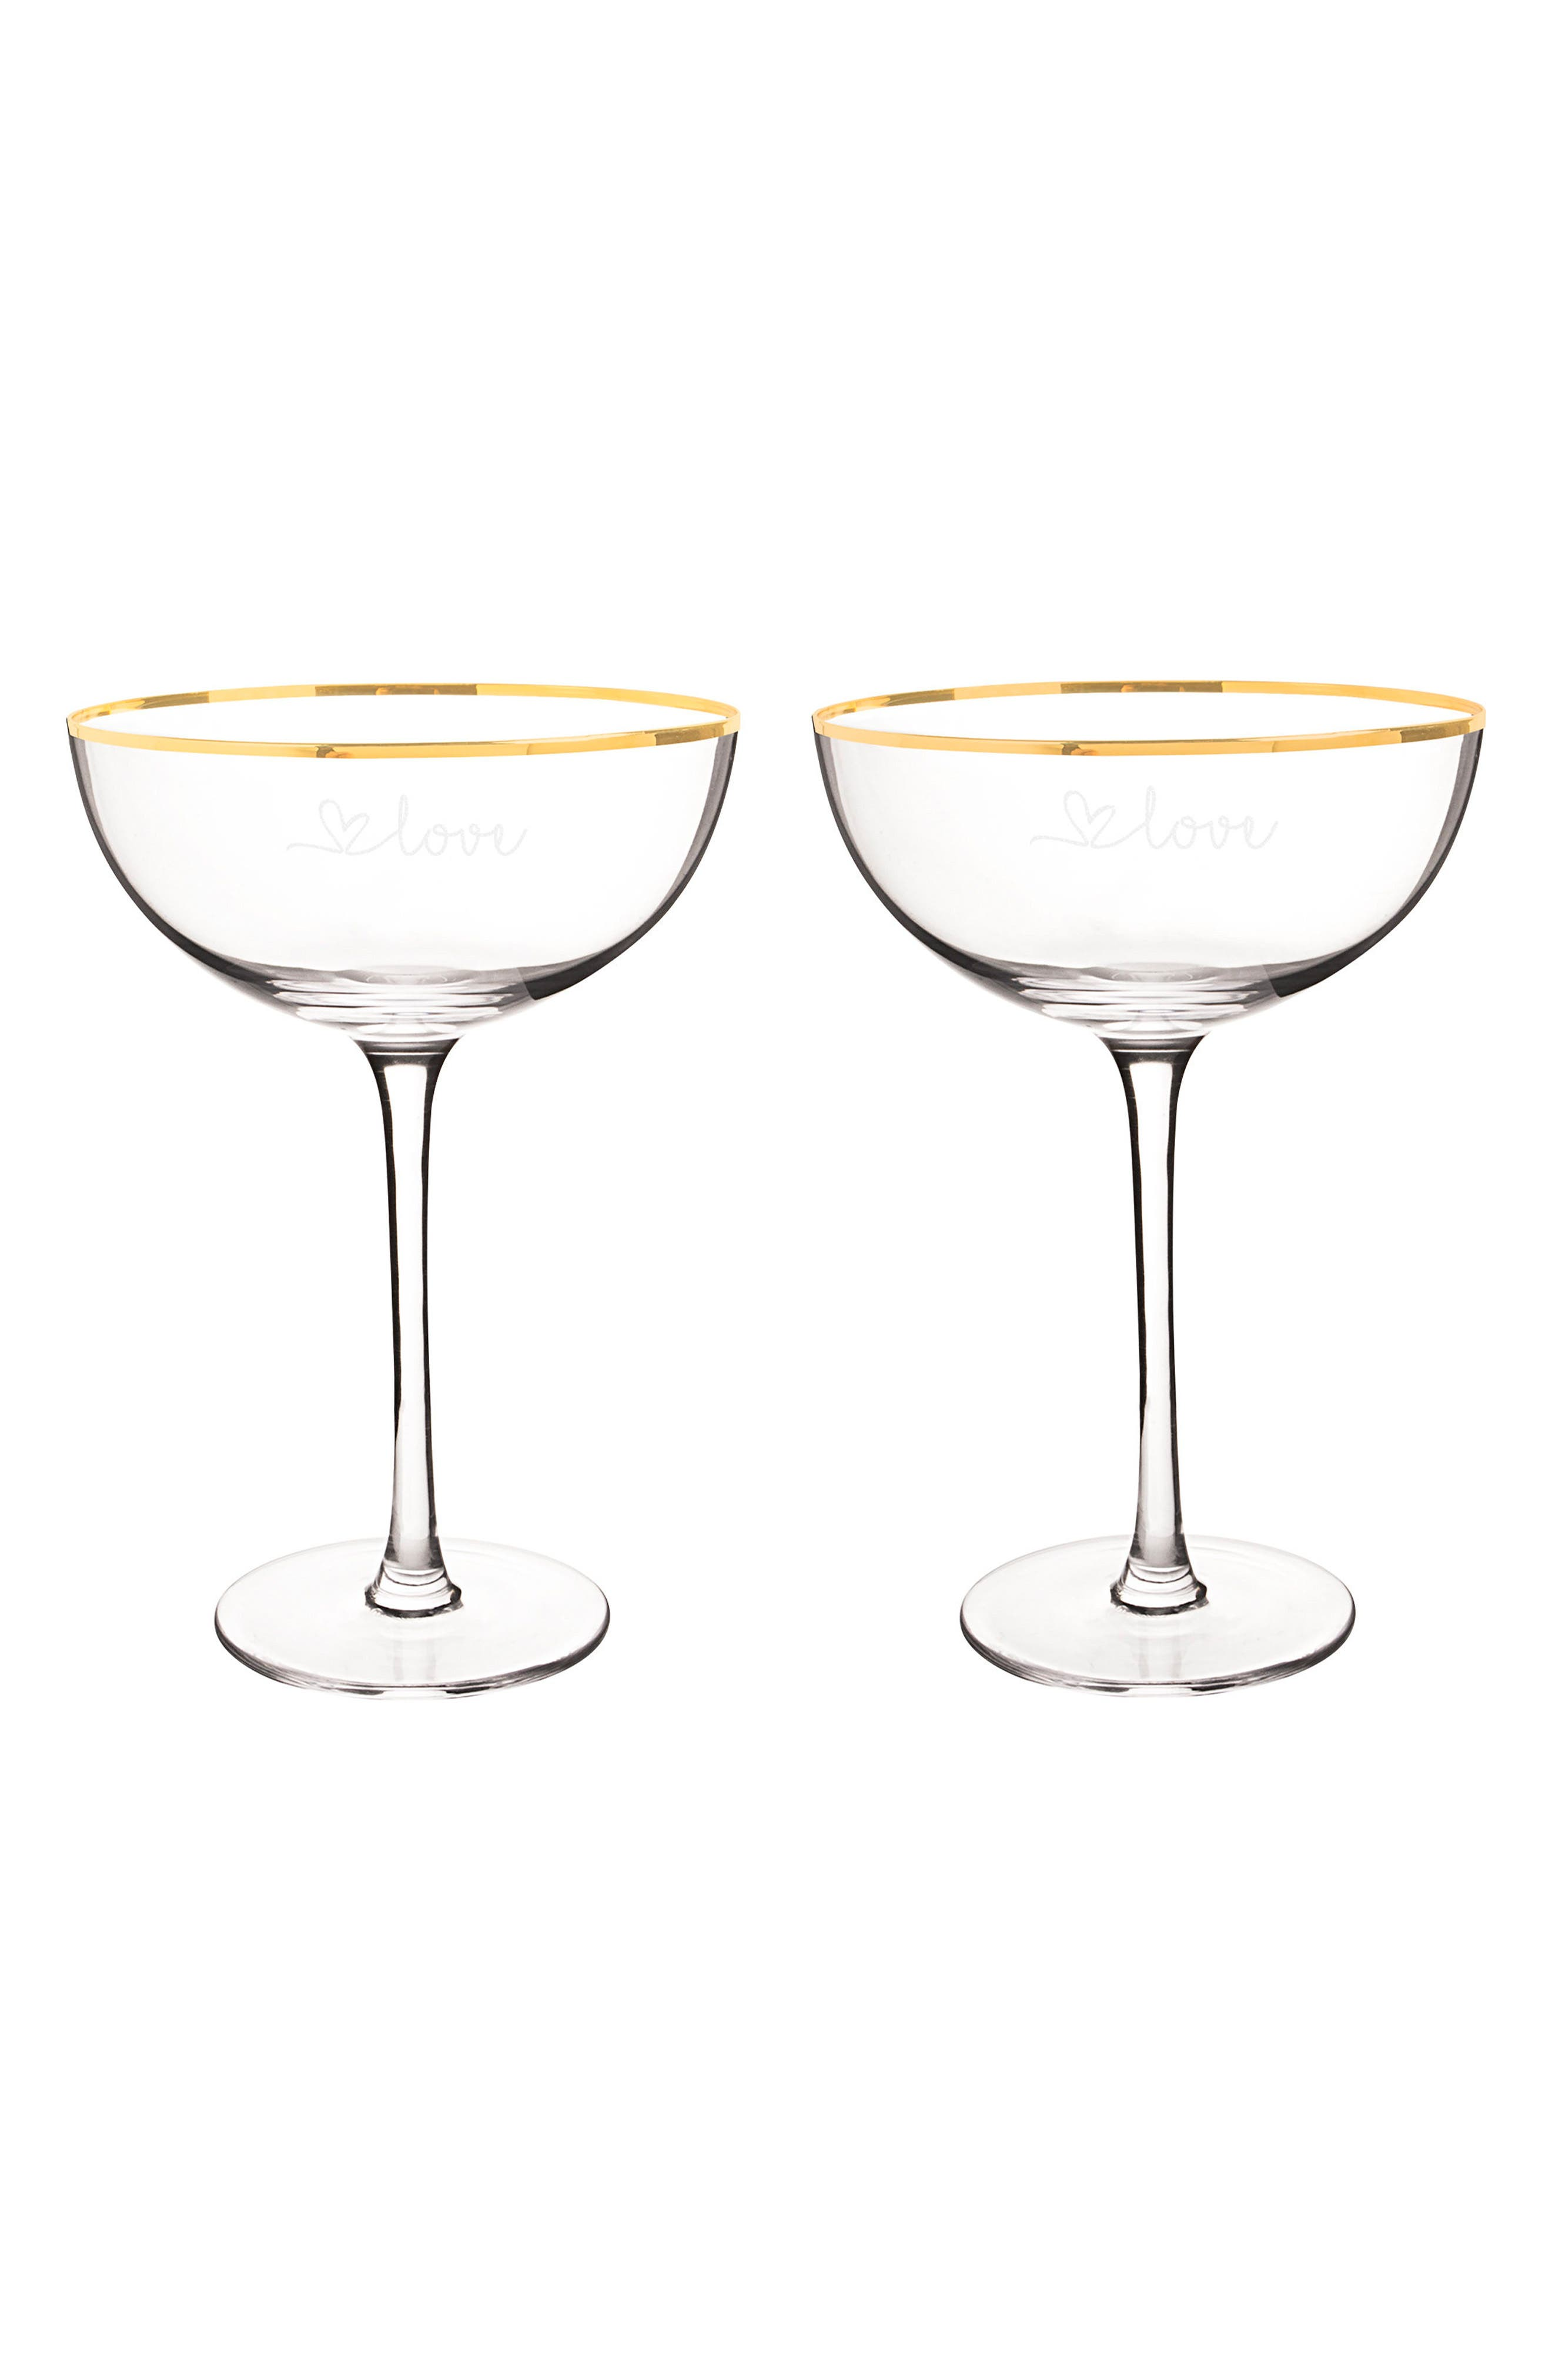 Love Set of 2 Champagne Coupe Toasting Glasses,                             Main thumbnail 1, color,                             710